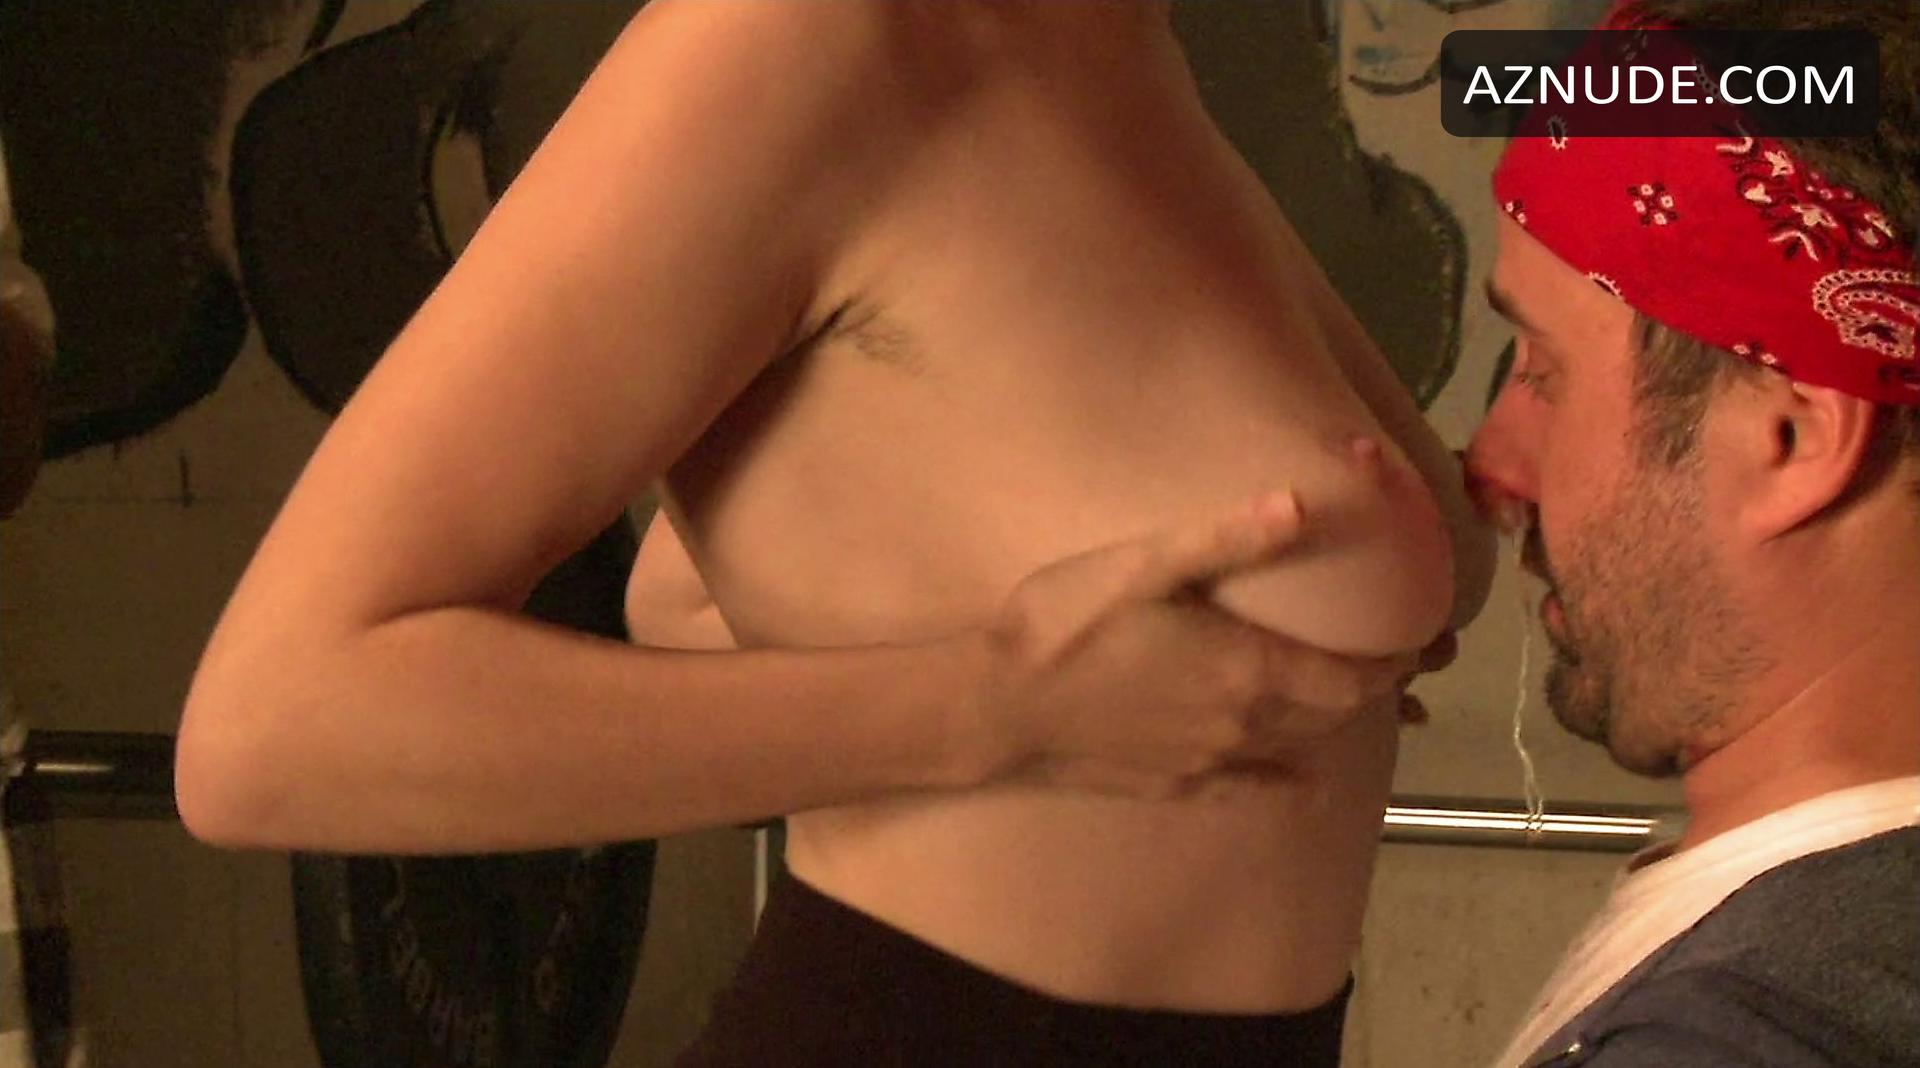 Kitten Natividad My Tutor Beautiful browse celebrity small nipples images - page 1 - aznude